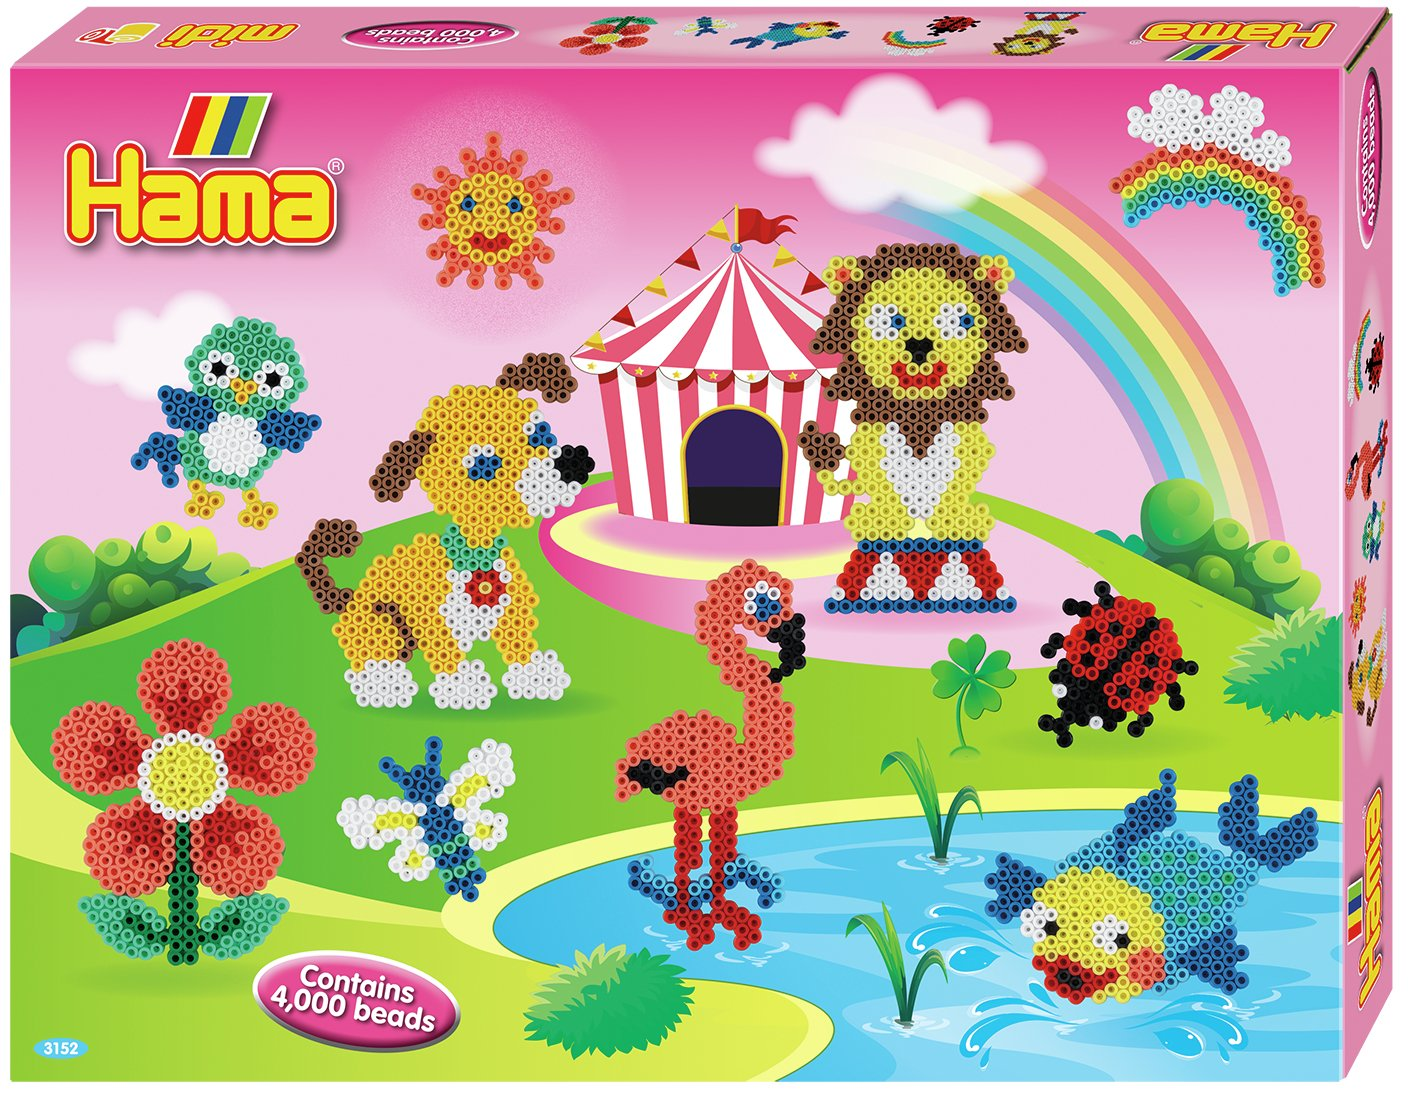 Hama Beads - Bumper Activity Set from Hama